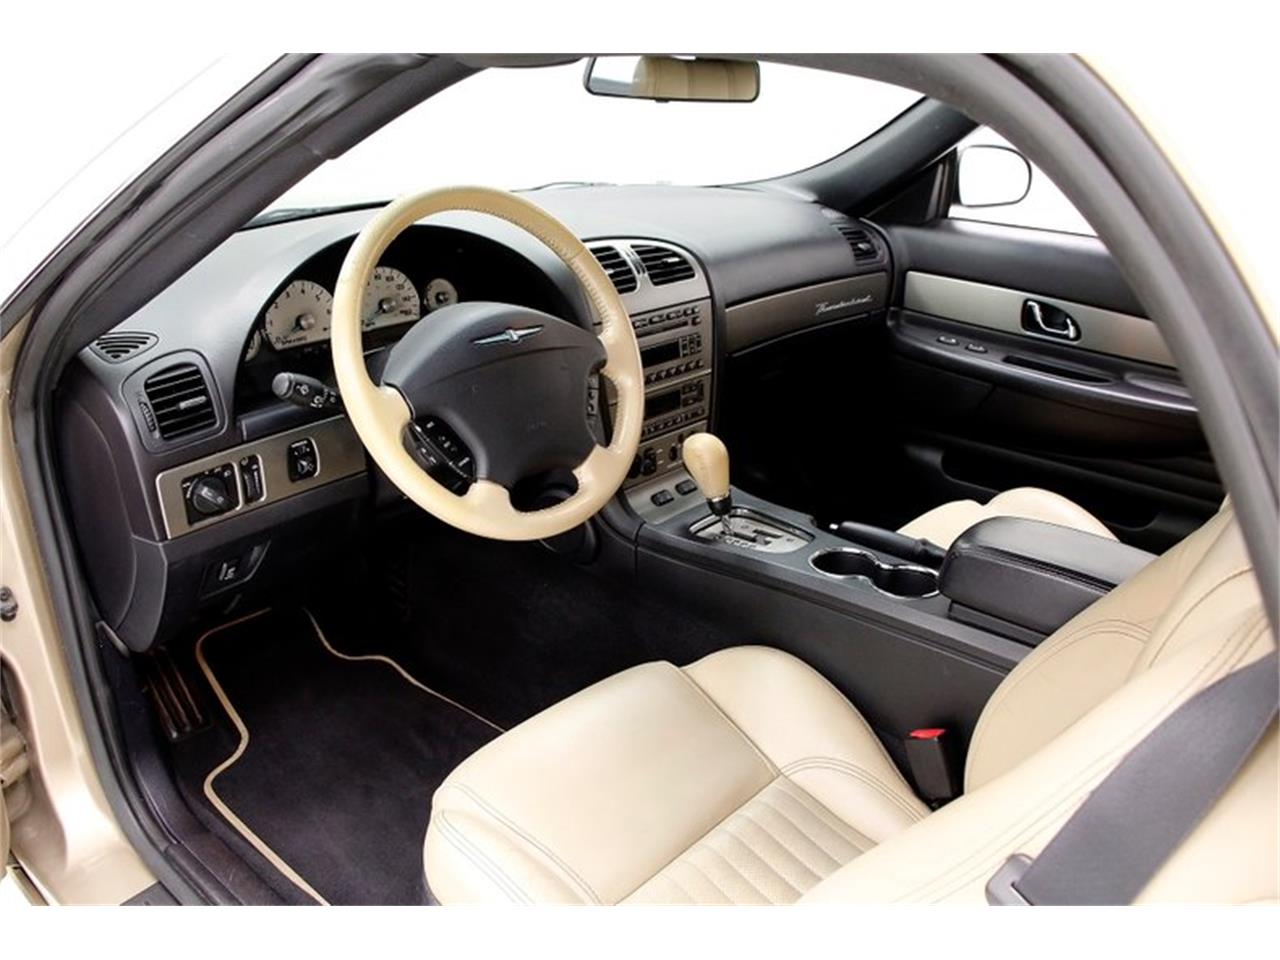 Large Picture of '05 Ford Thunderbird located in Pennsylvania - $16,500.00 Offered by Classic Auto Mall - Q6CY